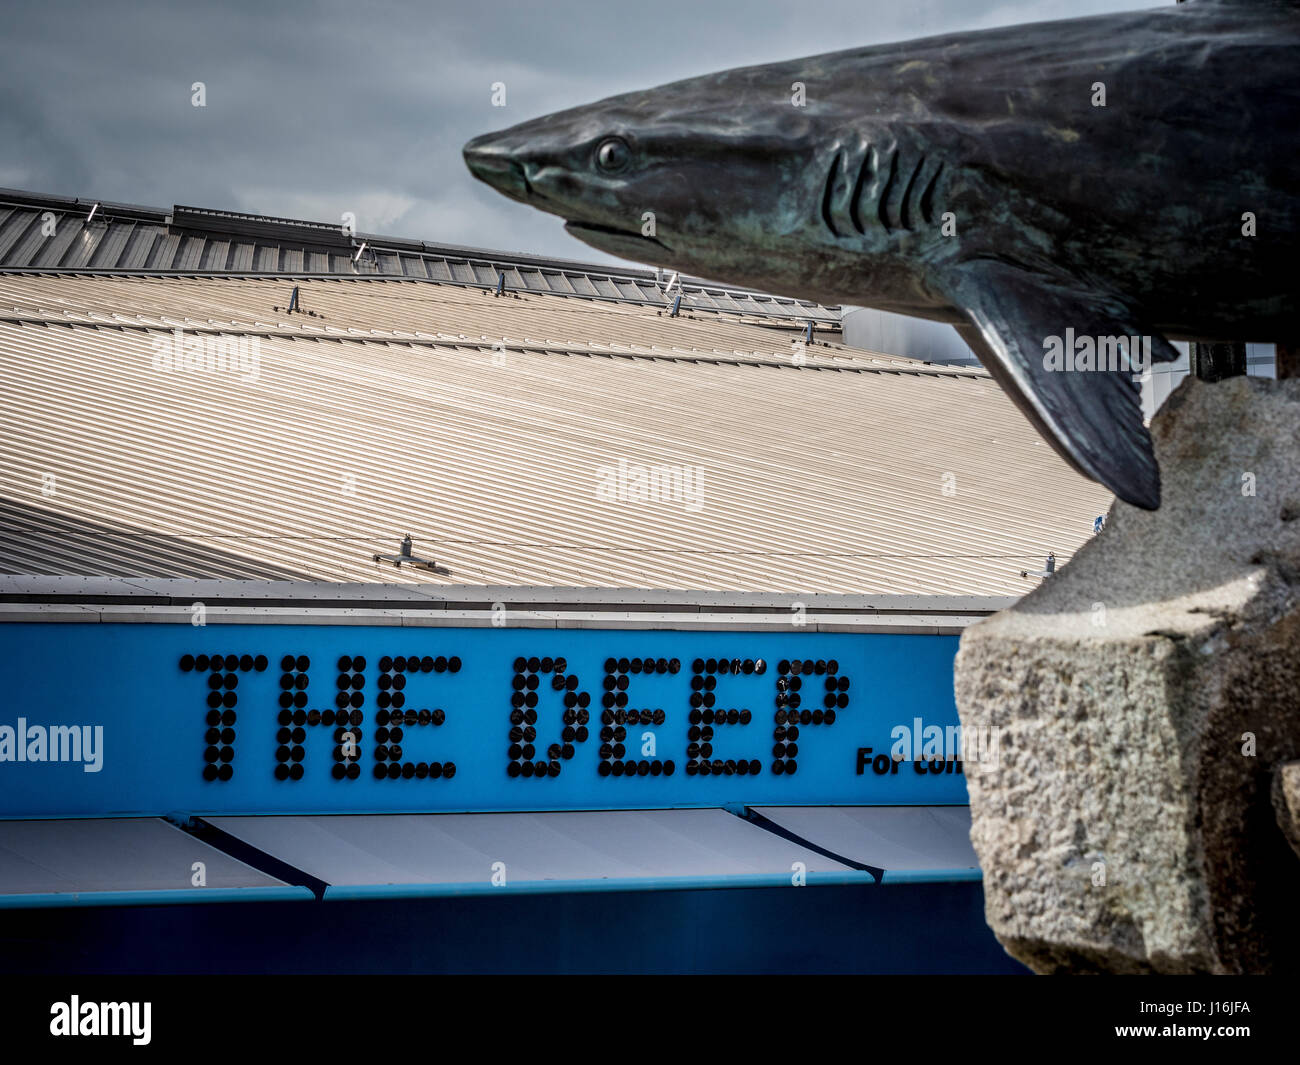 The Deep sign and shark sculpture, Visitor attraction, Hull, UK. - Stock Image